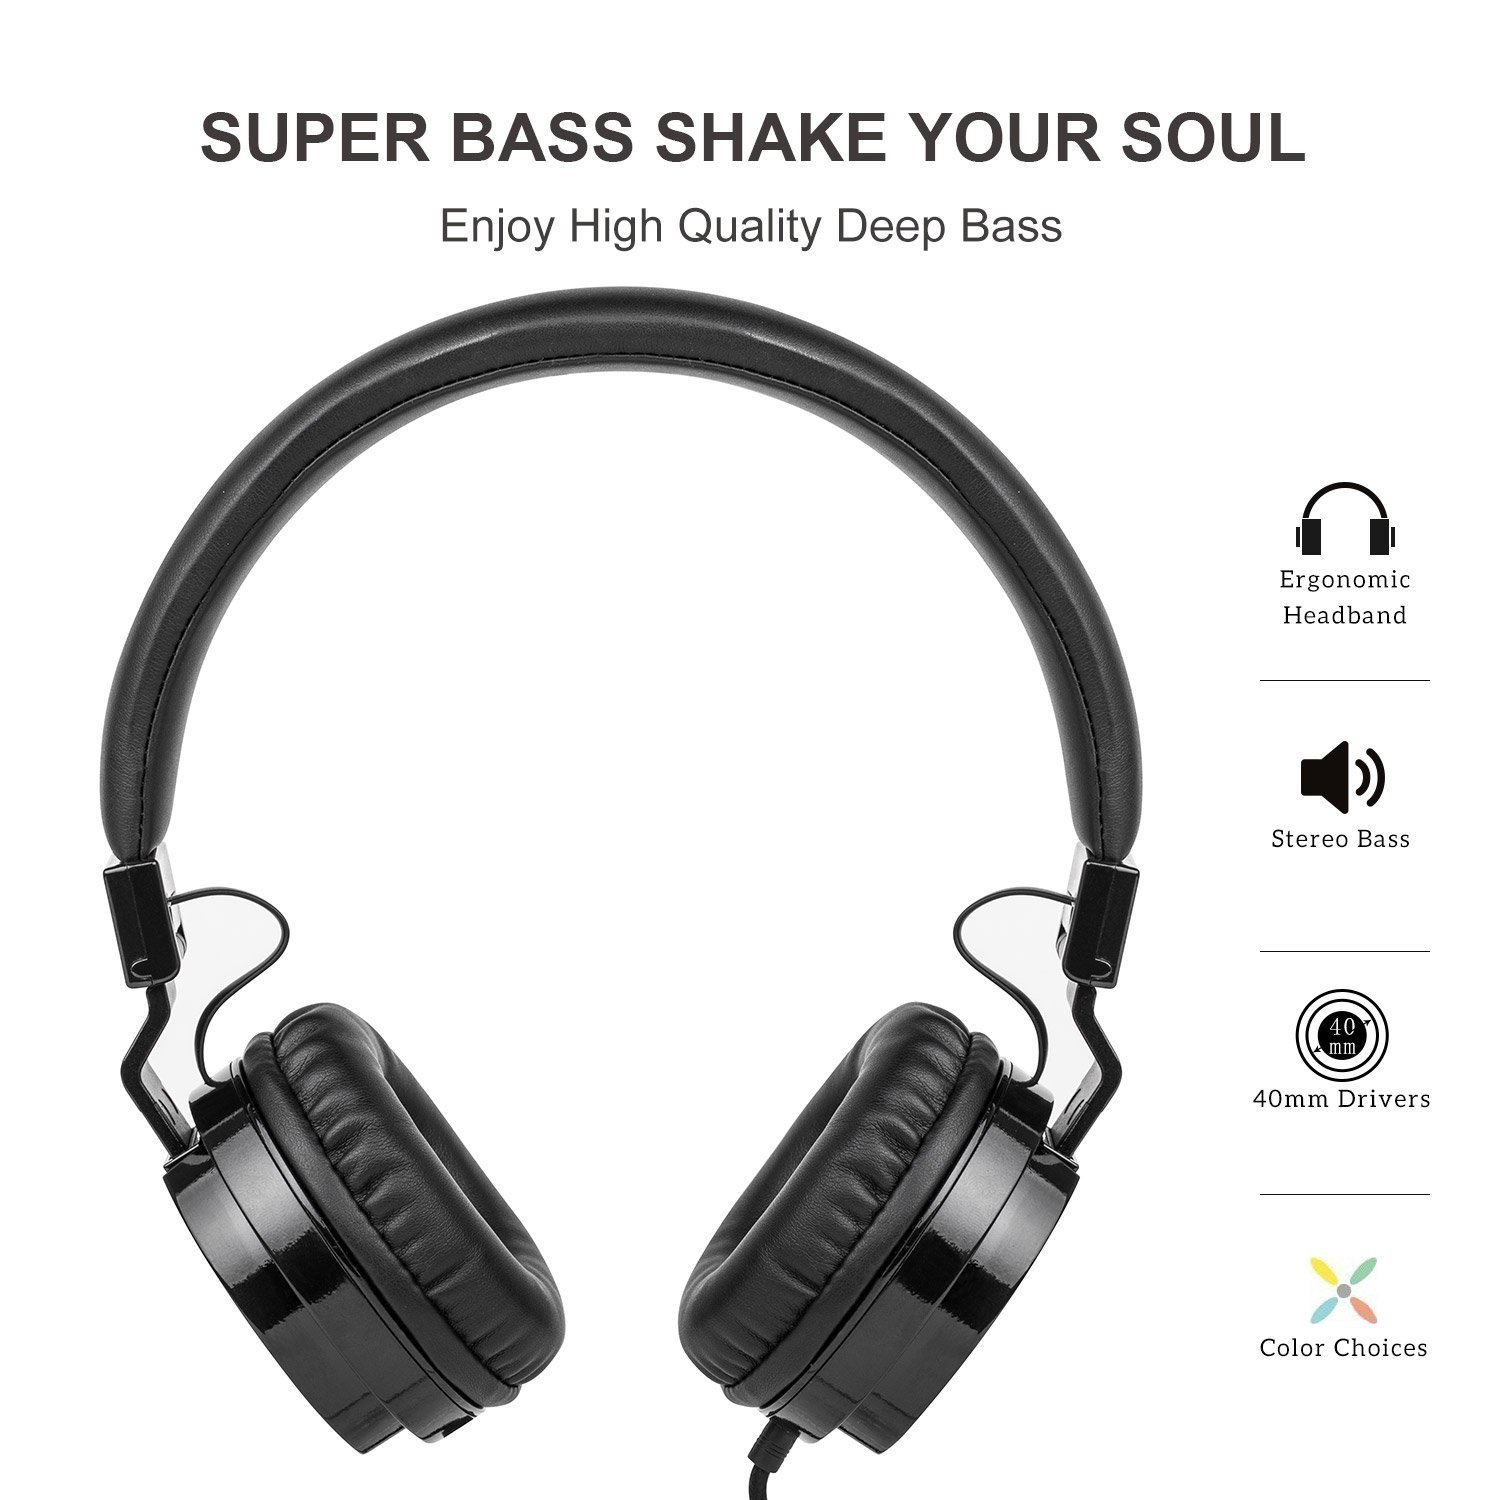 Picun Wired Headphones with Microphones for Computer Smartphones Tablet Laptop MP3/4,Earphones Over Ear Stereo Headsets with Deep Bass for Kids Teens Adults Black by Picun (Image #2)